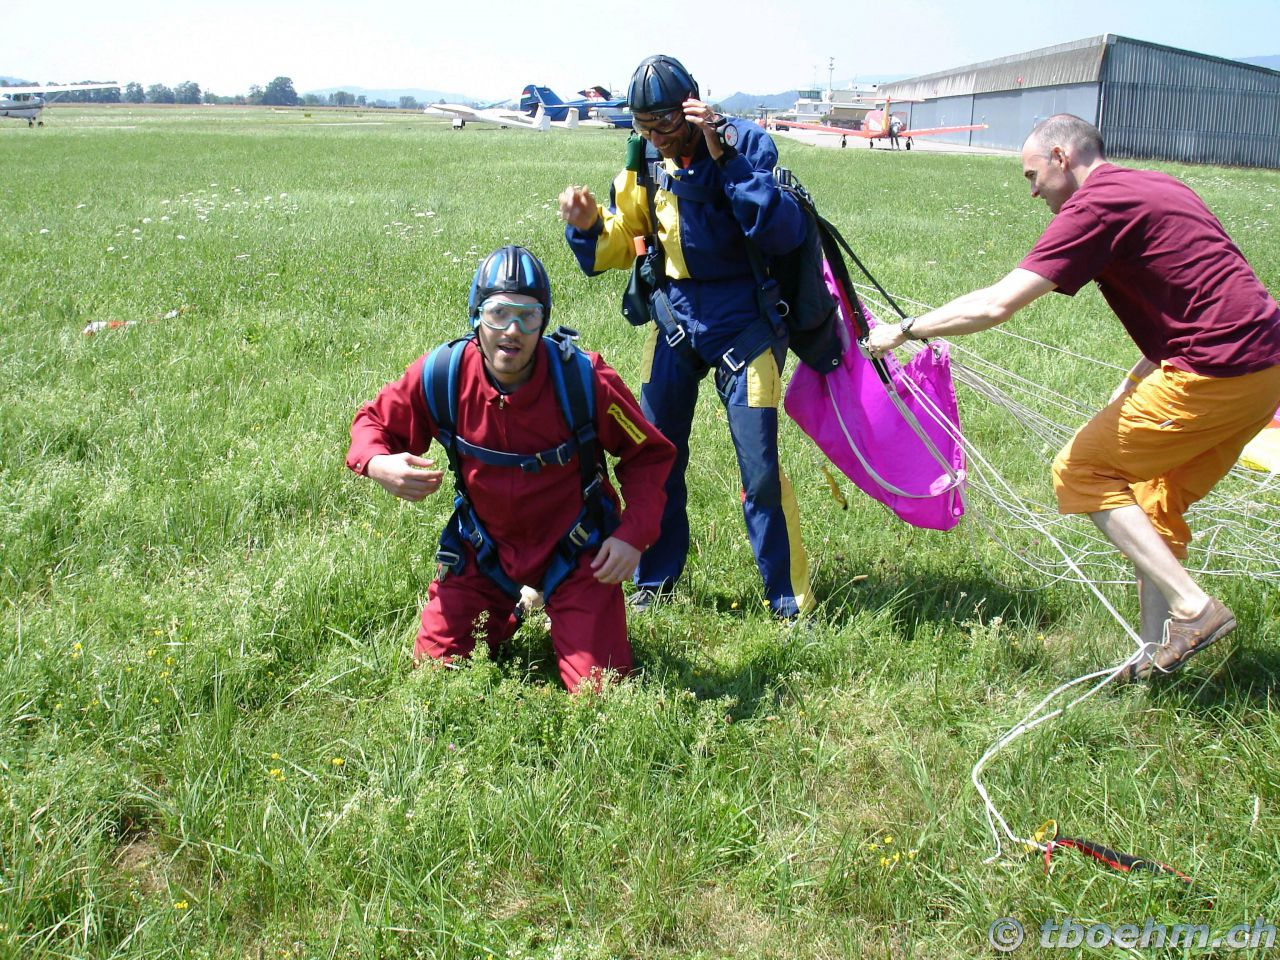 skydive_grenchen_16_07_2006_28_20121125_1597410415